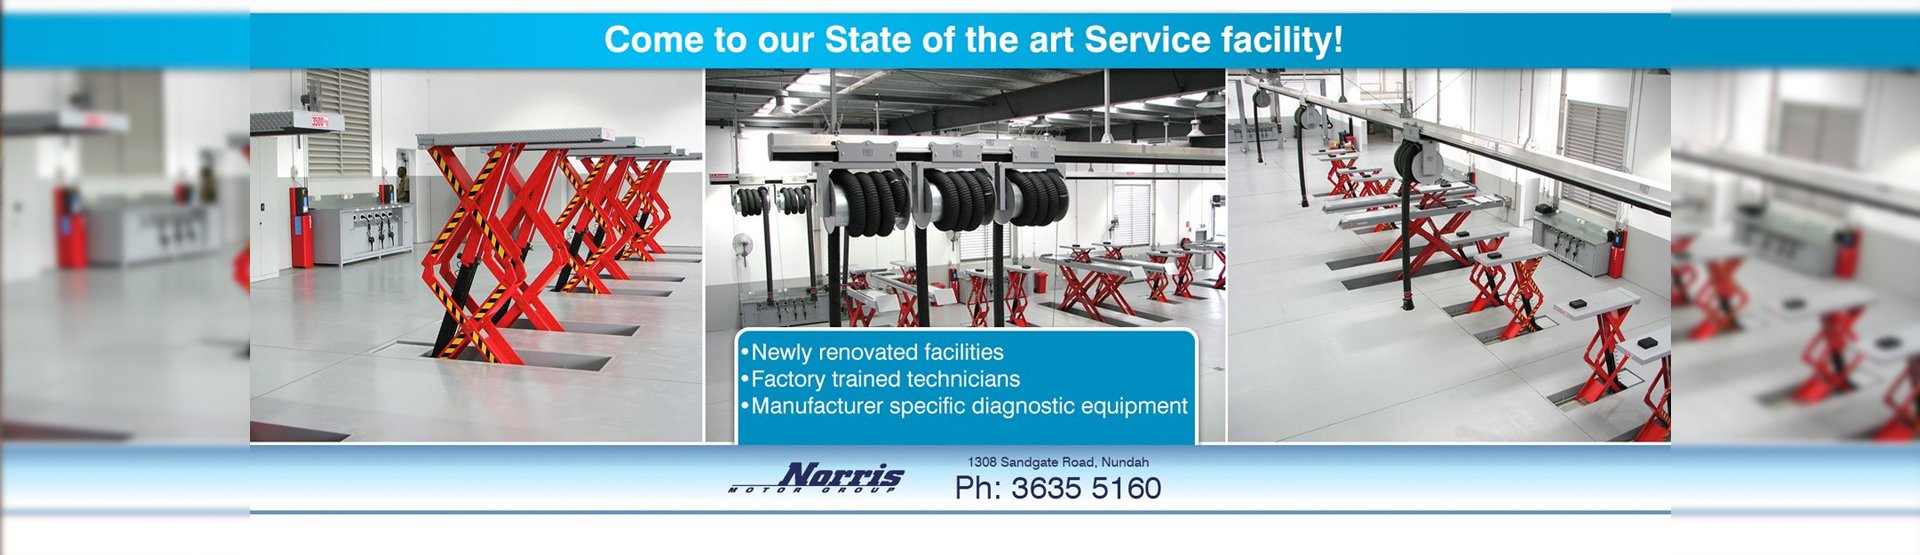 Come to our state of the art service facility at Nundah Mitsubishi Brisbane.